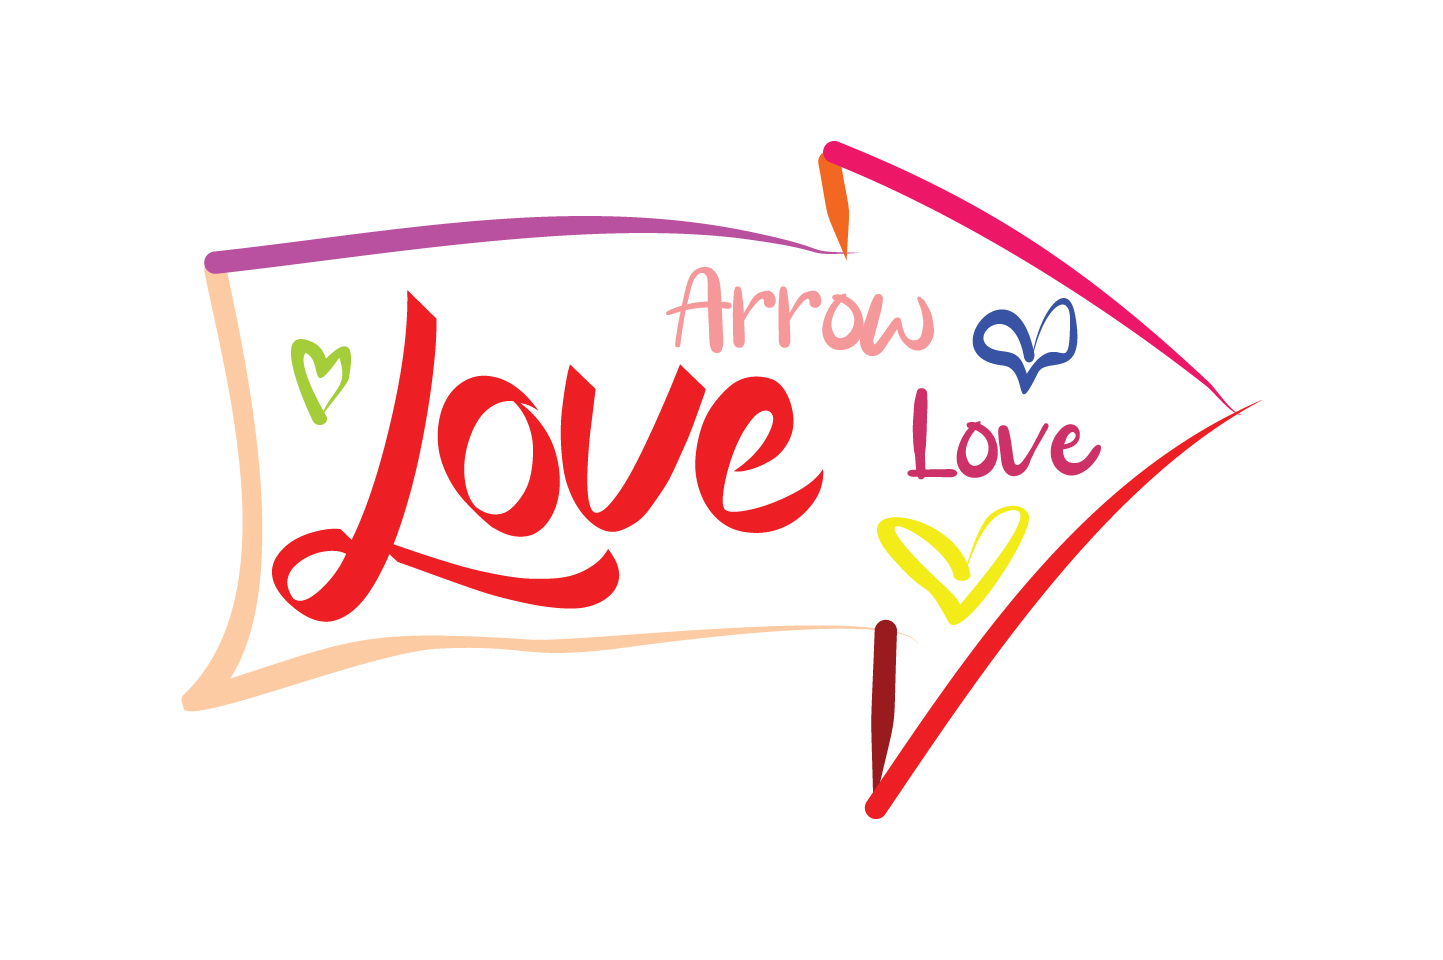 Download Free Love Arrow Love Quote Svg Cut Graphic By Yuhana Purwanti for Cricut Explore, Silhouette and other cutting machines.